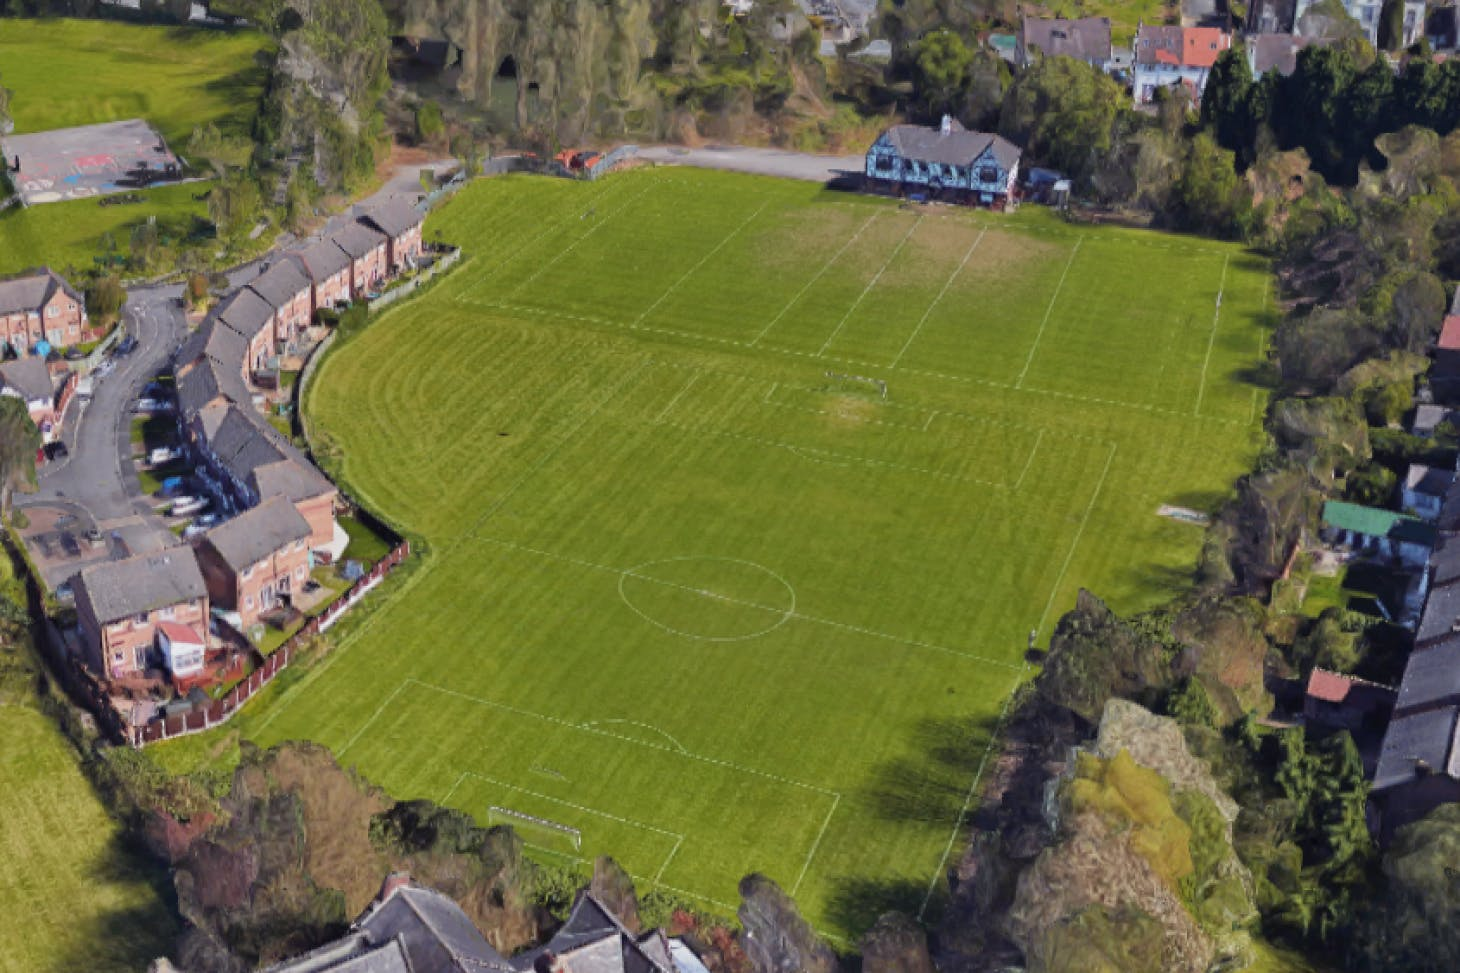 Broughton Rugby Union Football Club 11 a side | Grass football pitch